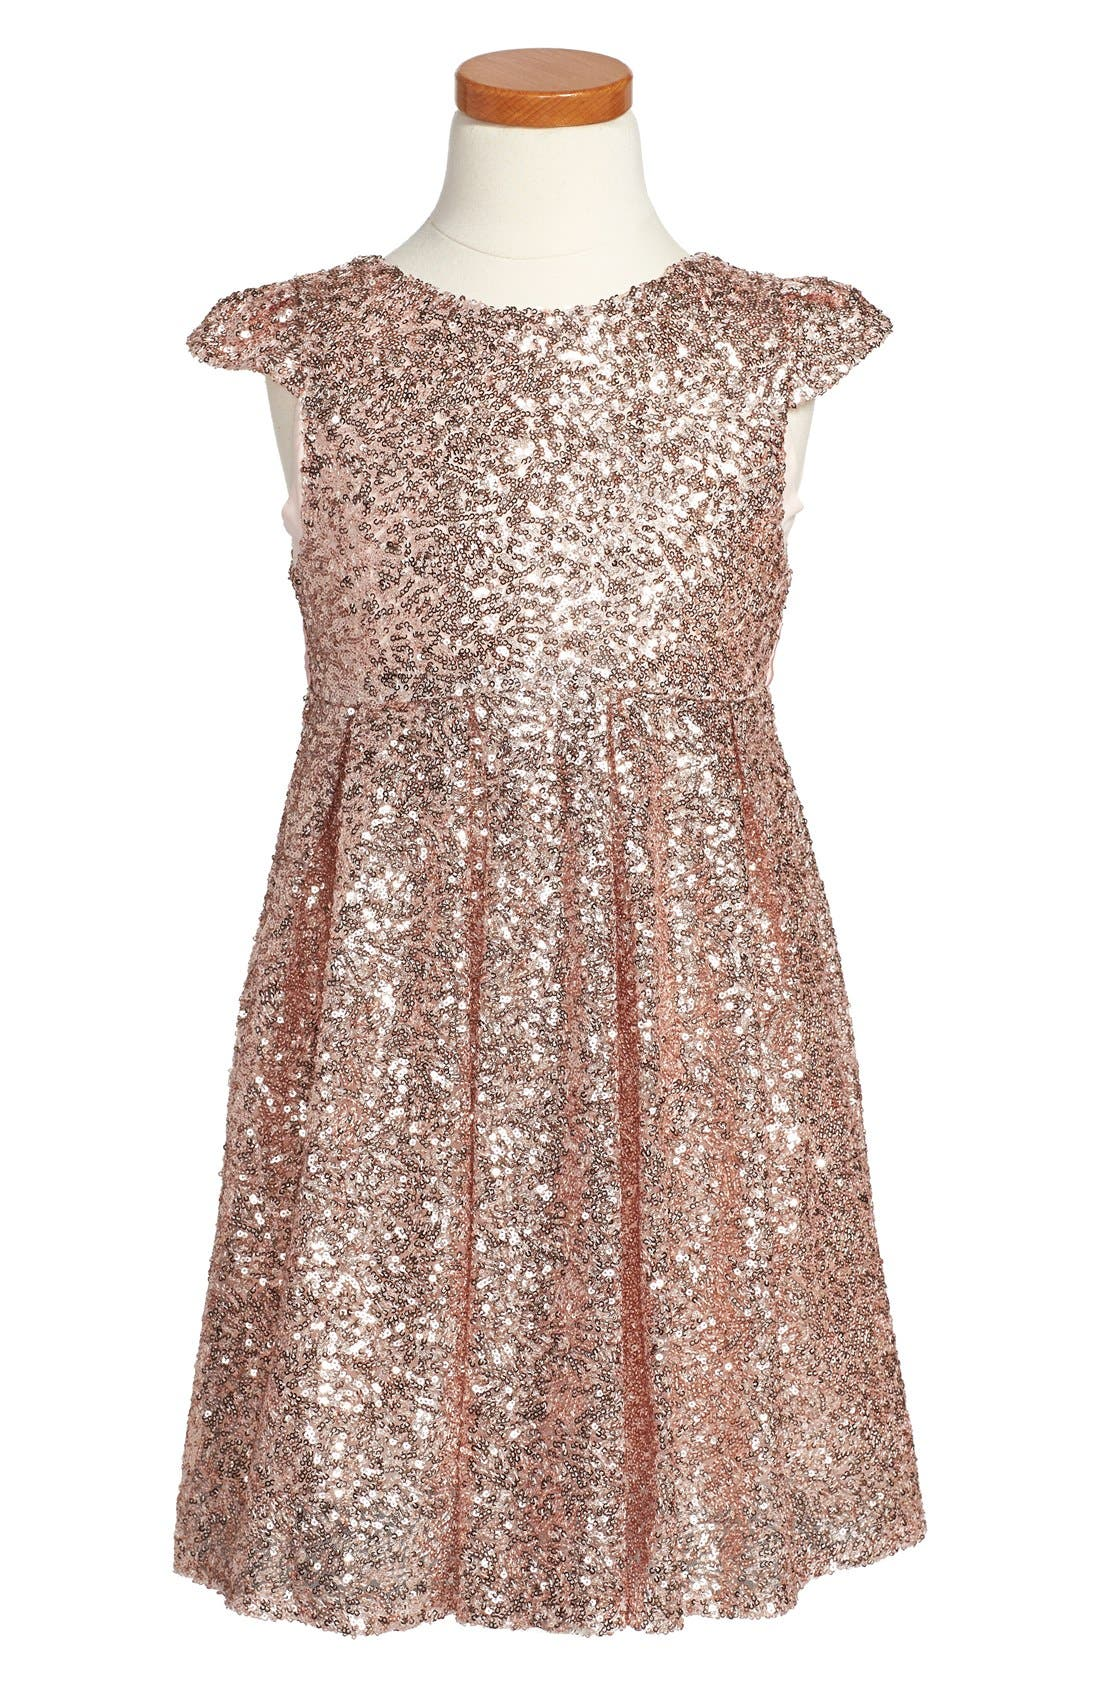 Main Image - ilovegorgeous 'Moon Festival' Sequin Dress (Toddler Girls & Little Girls)